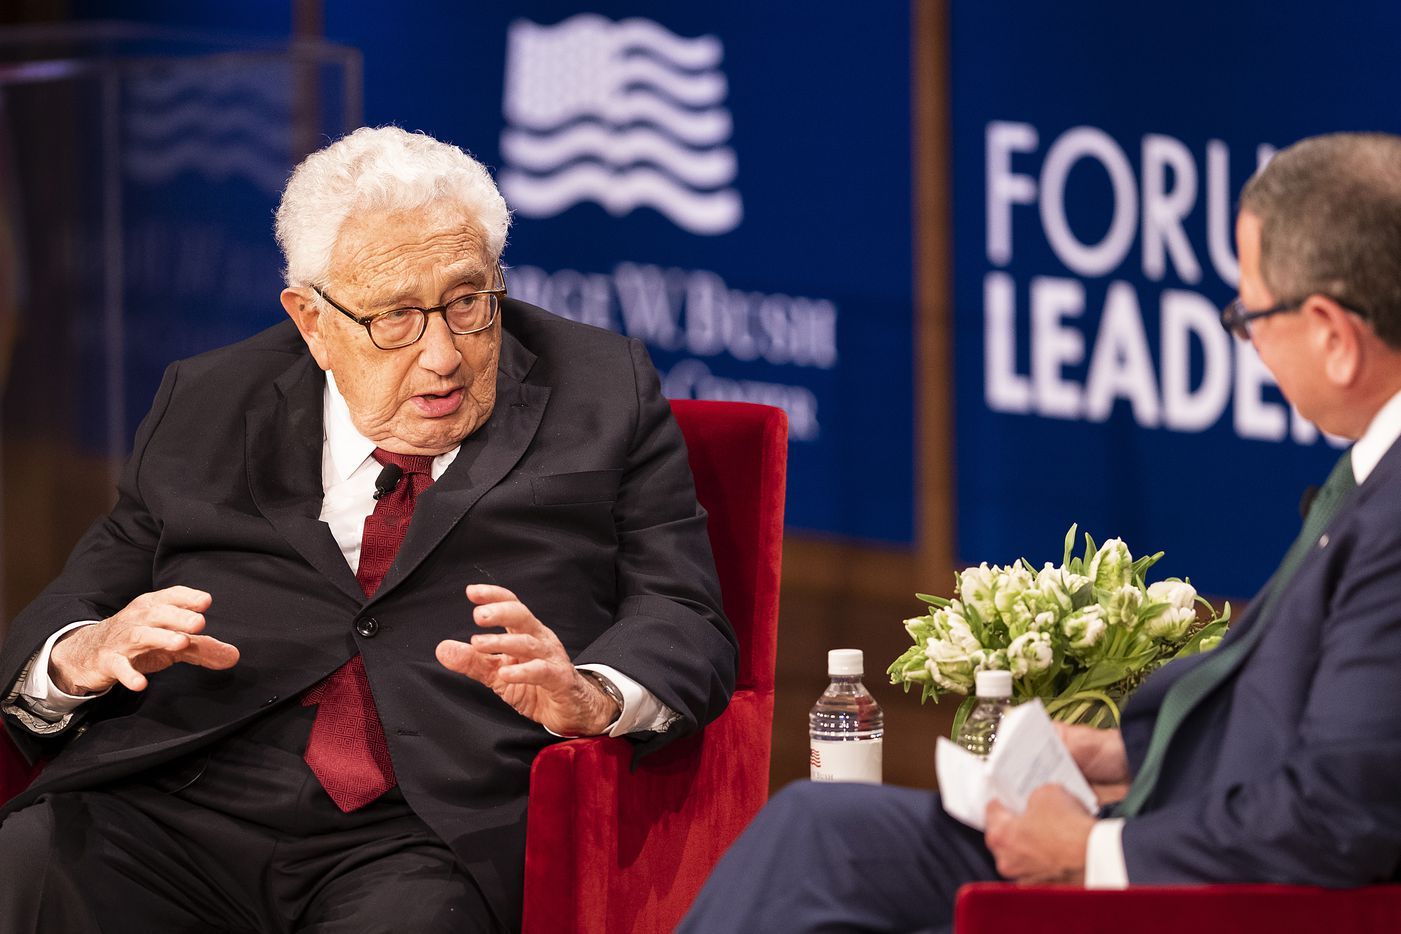 "Dr. Henry Kissinger talks with moderator Ken Hersh during a keynote conversation titled ""The New World Order"" at the Forum on Leadership at the George, W. Bush Presidential Center on Thursday, April 11, 2019, in Dallas. (Smiley N. Pool/The Dallas Morning News)"